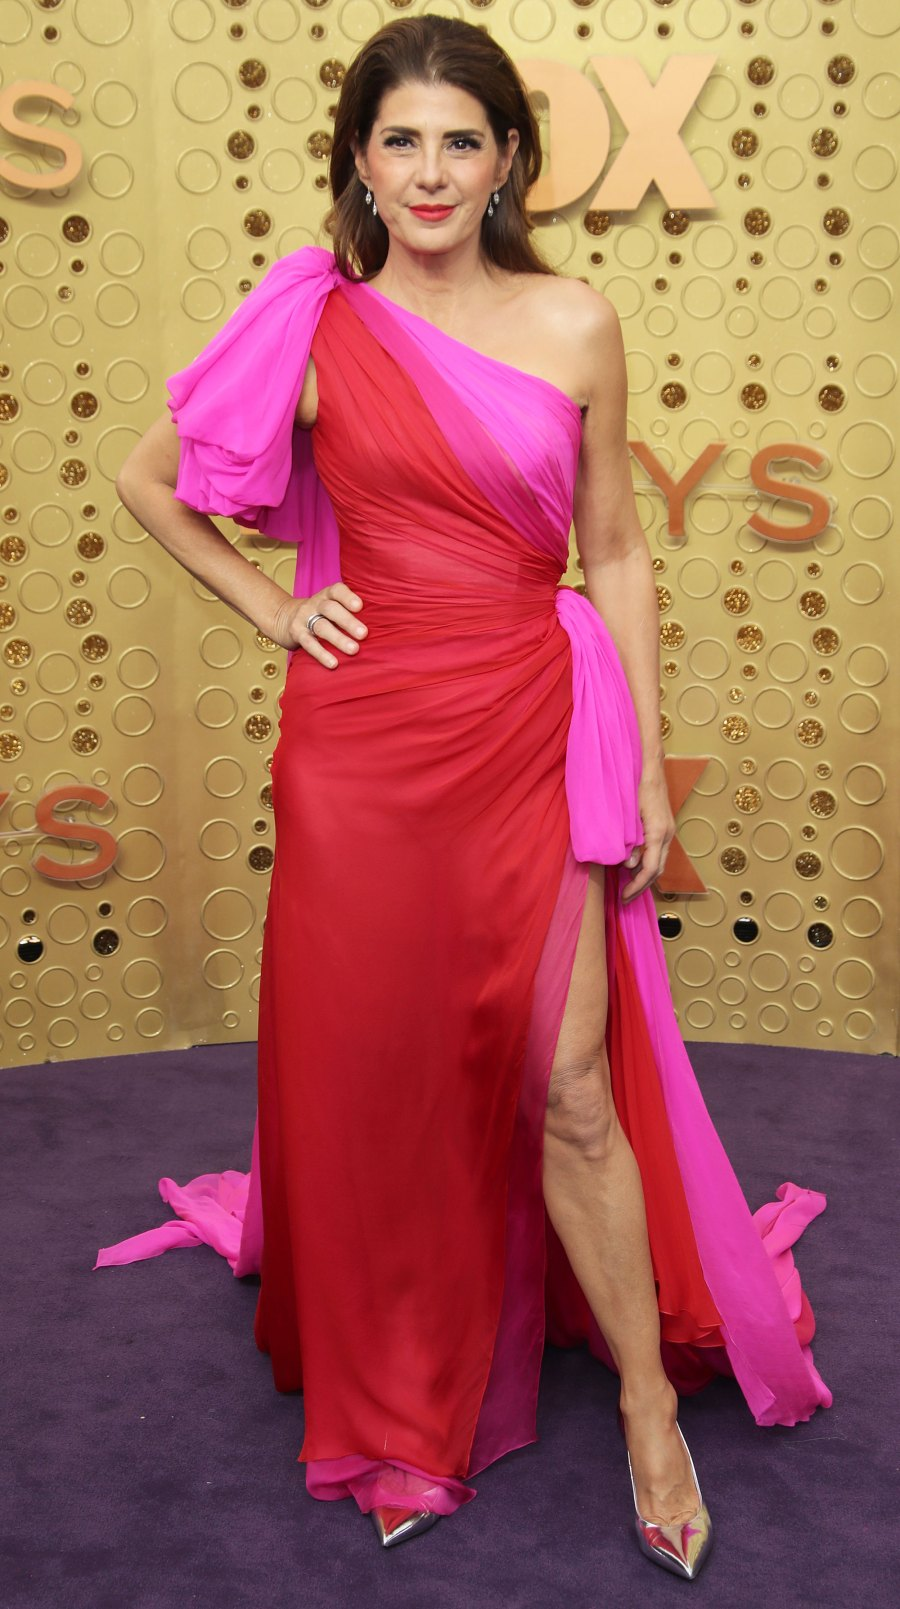 Celebs Wearing Red and Pink - Marisa Tomei